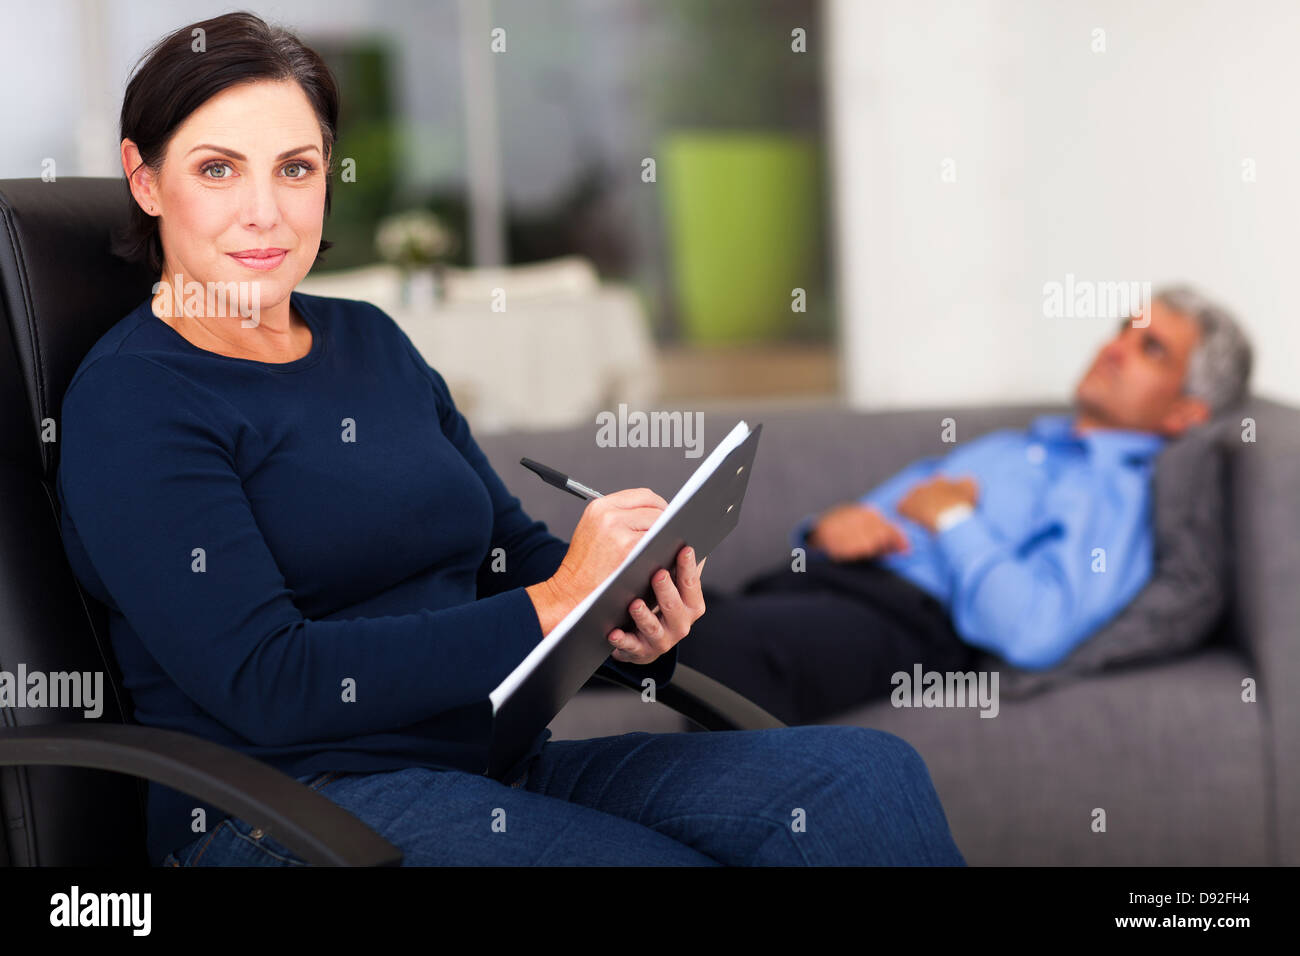 portrait of middle aged female therapist in office with patient in background - Stock Image